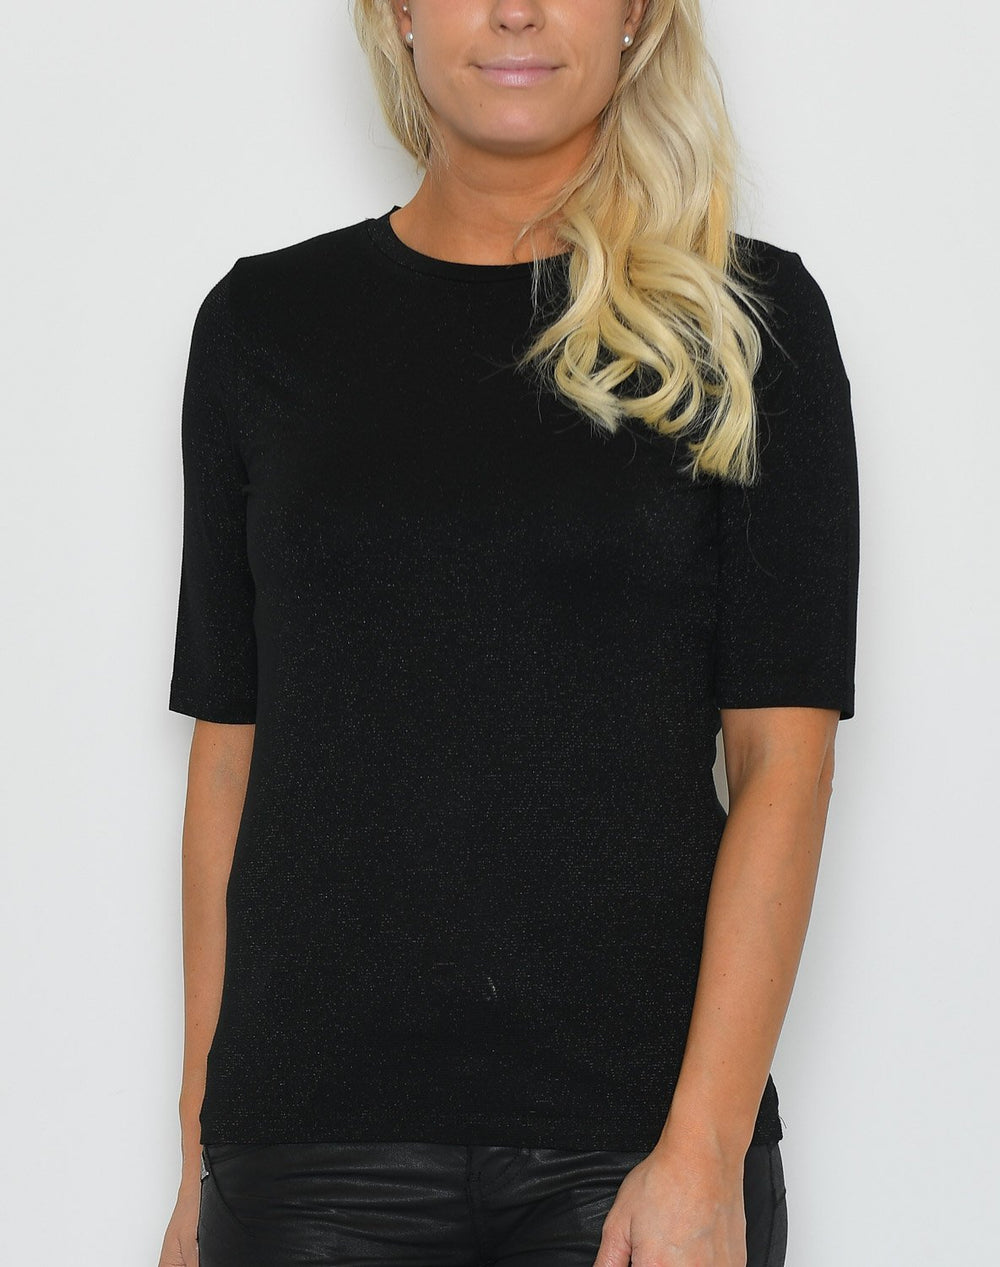 B.young BYSillio t-shirt black - Online-Mode